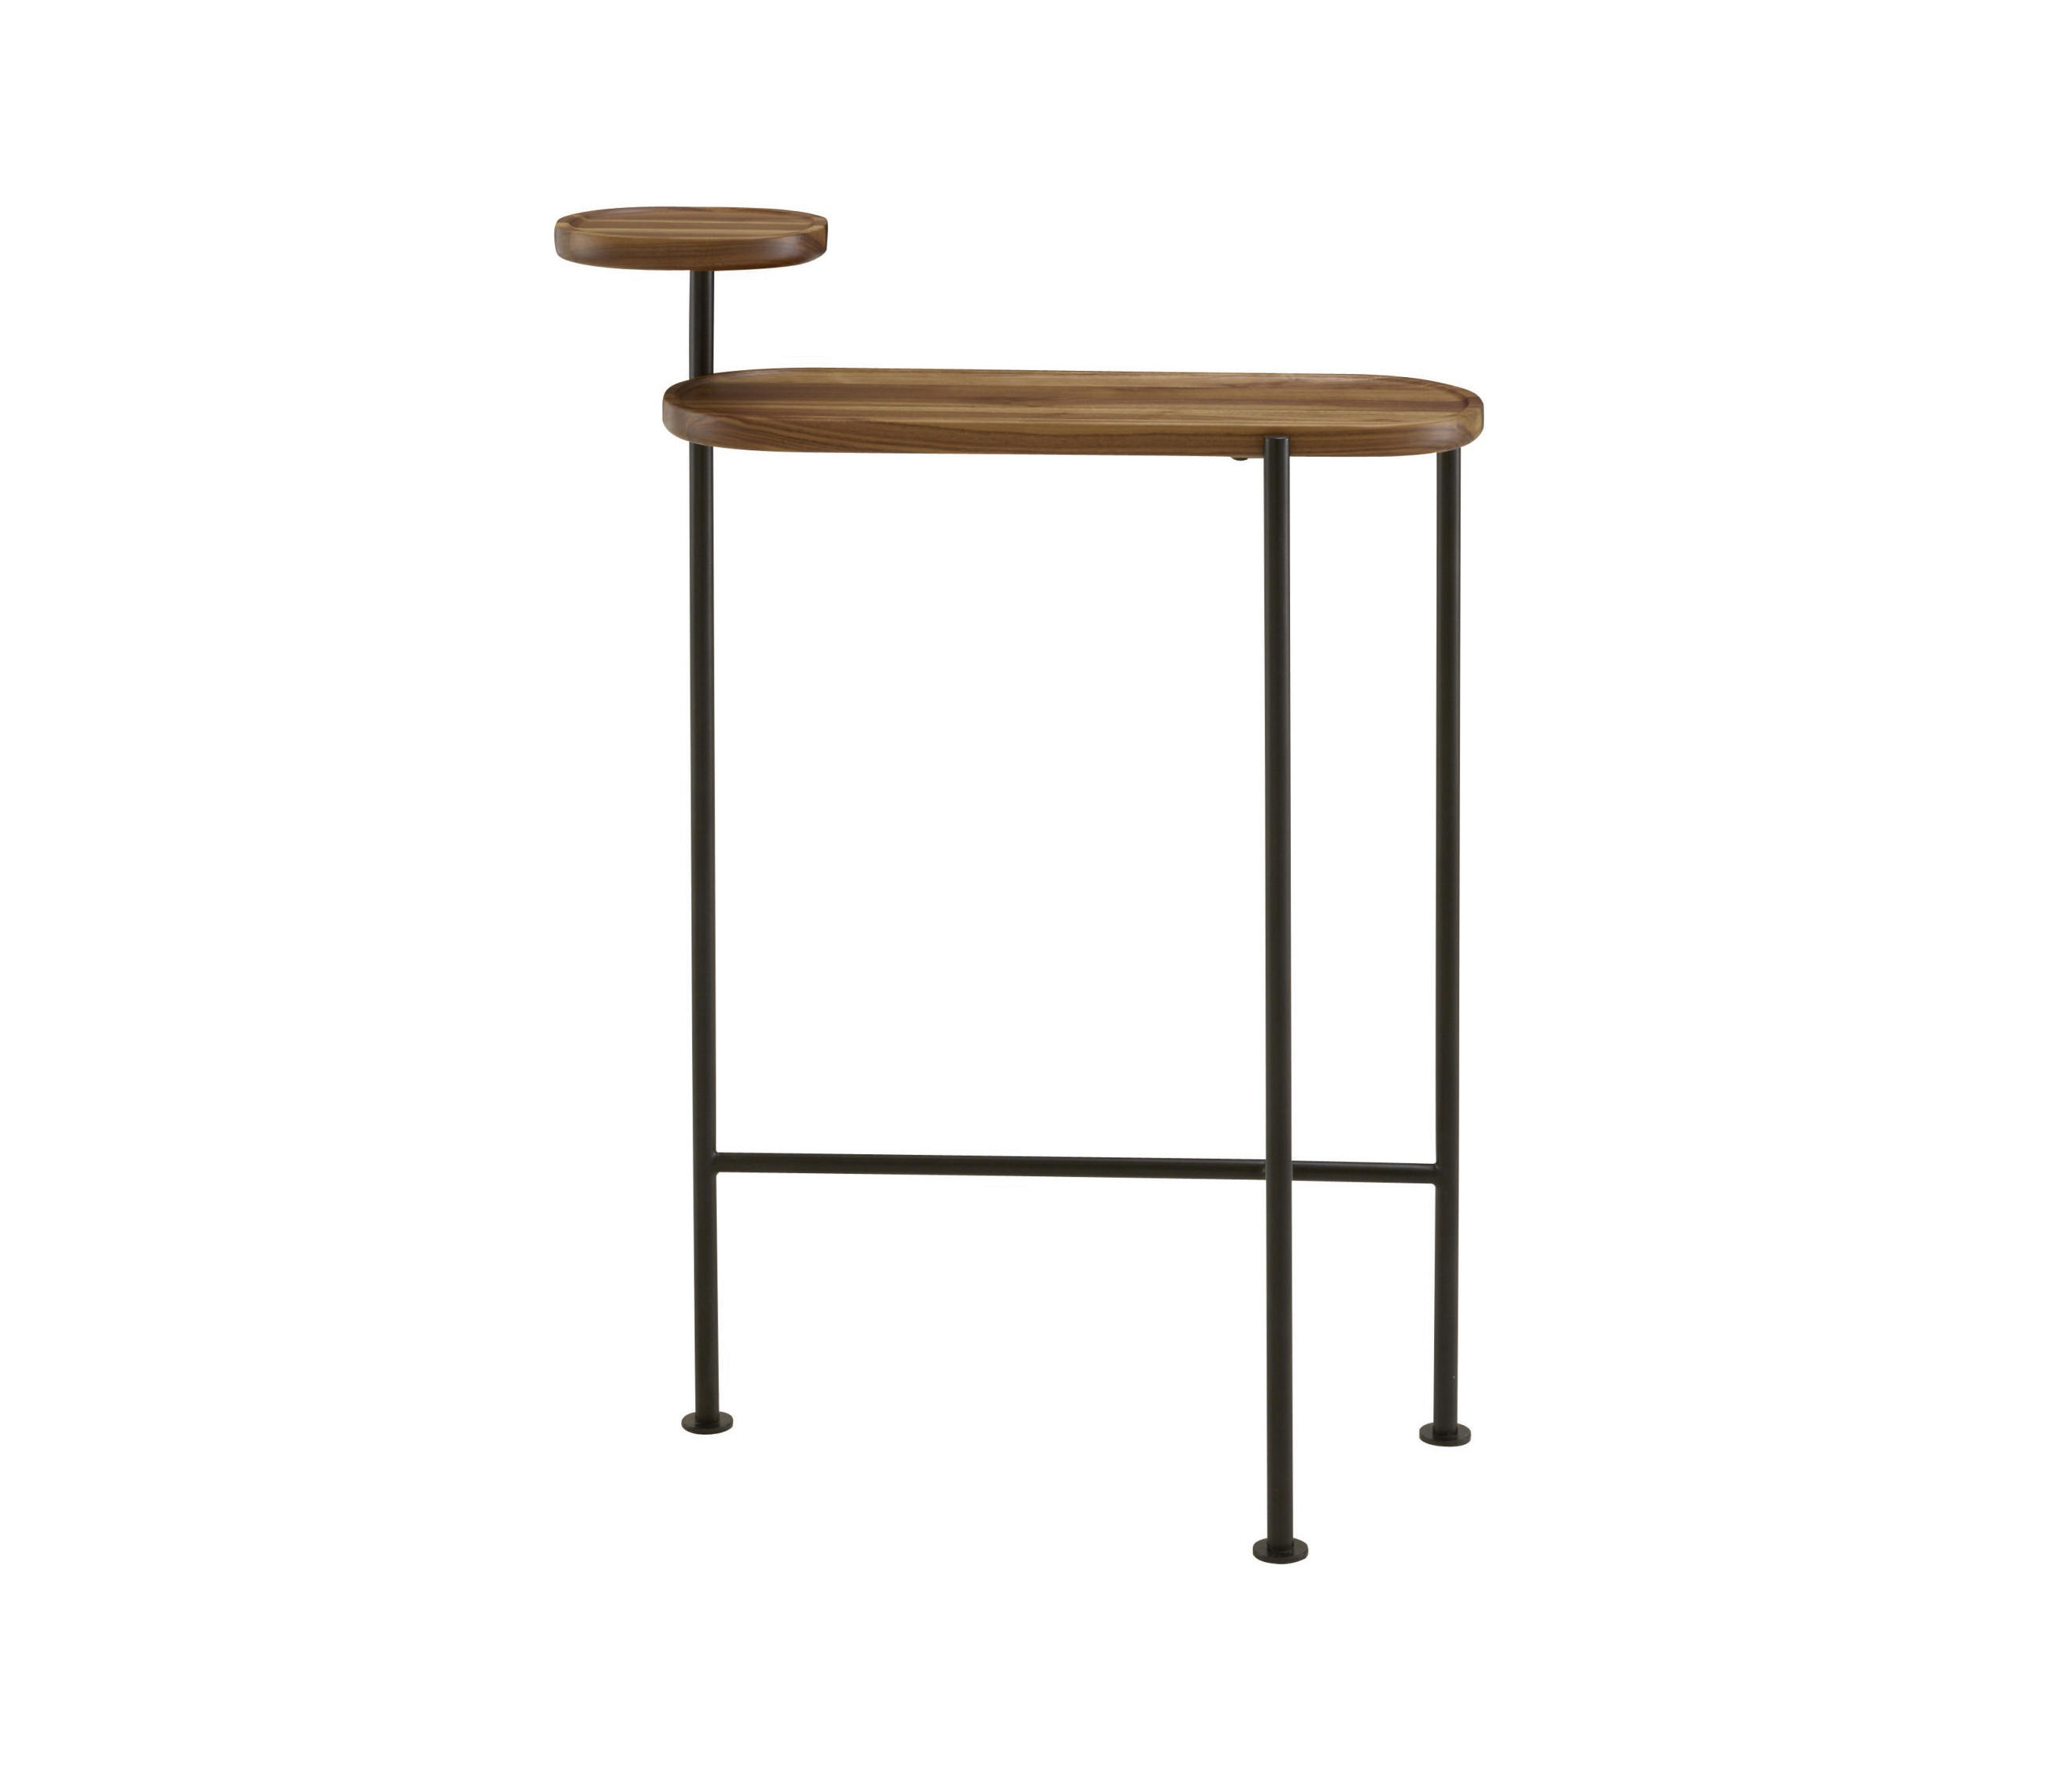 Console Ligne Roset Loomy Console Table Console Tables From Ligne Roset Architonic